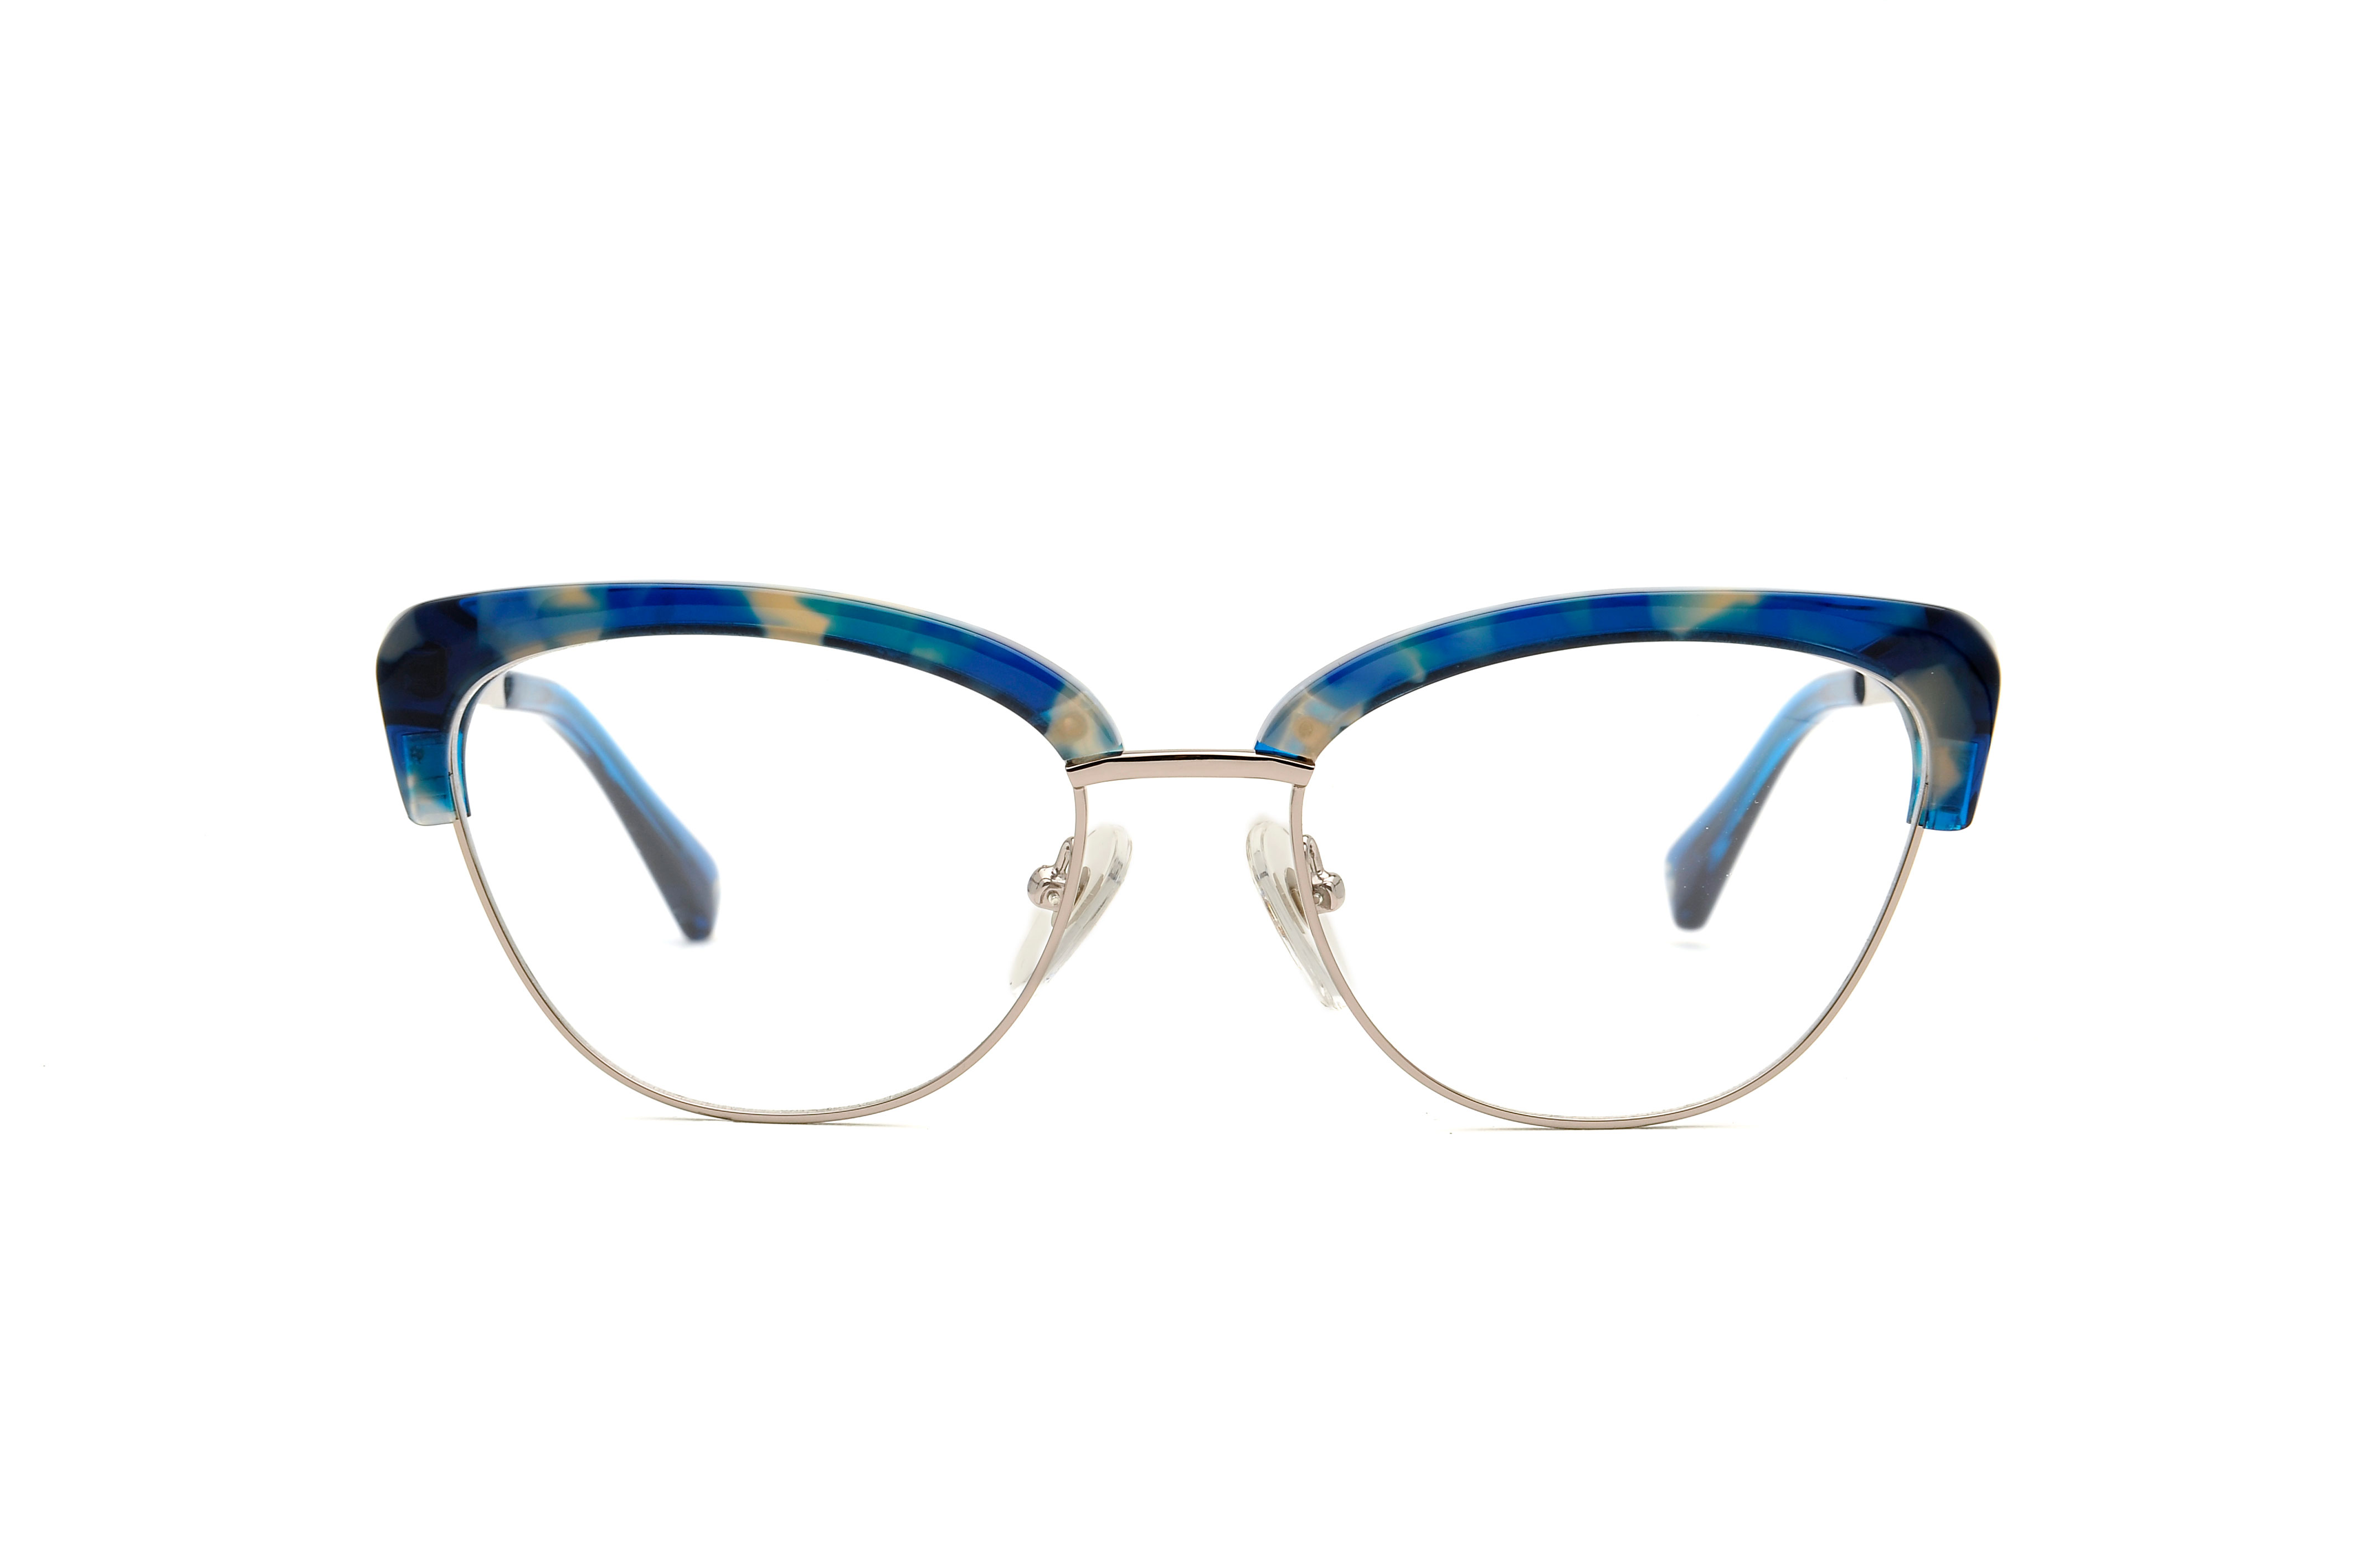 September acetate/metal cat eye blue sunglasses by GIGI Studios